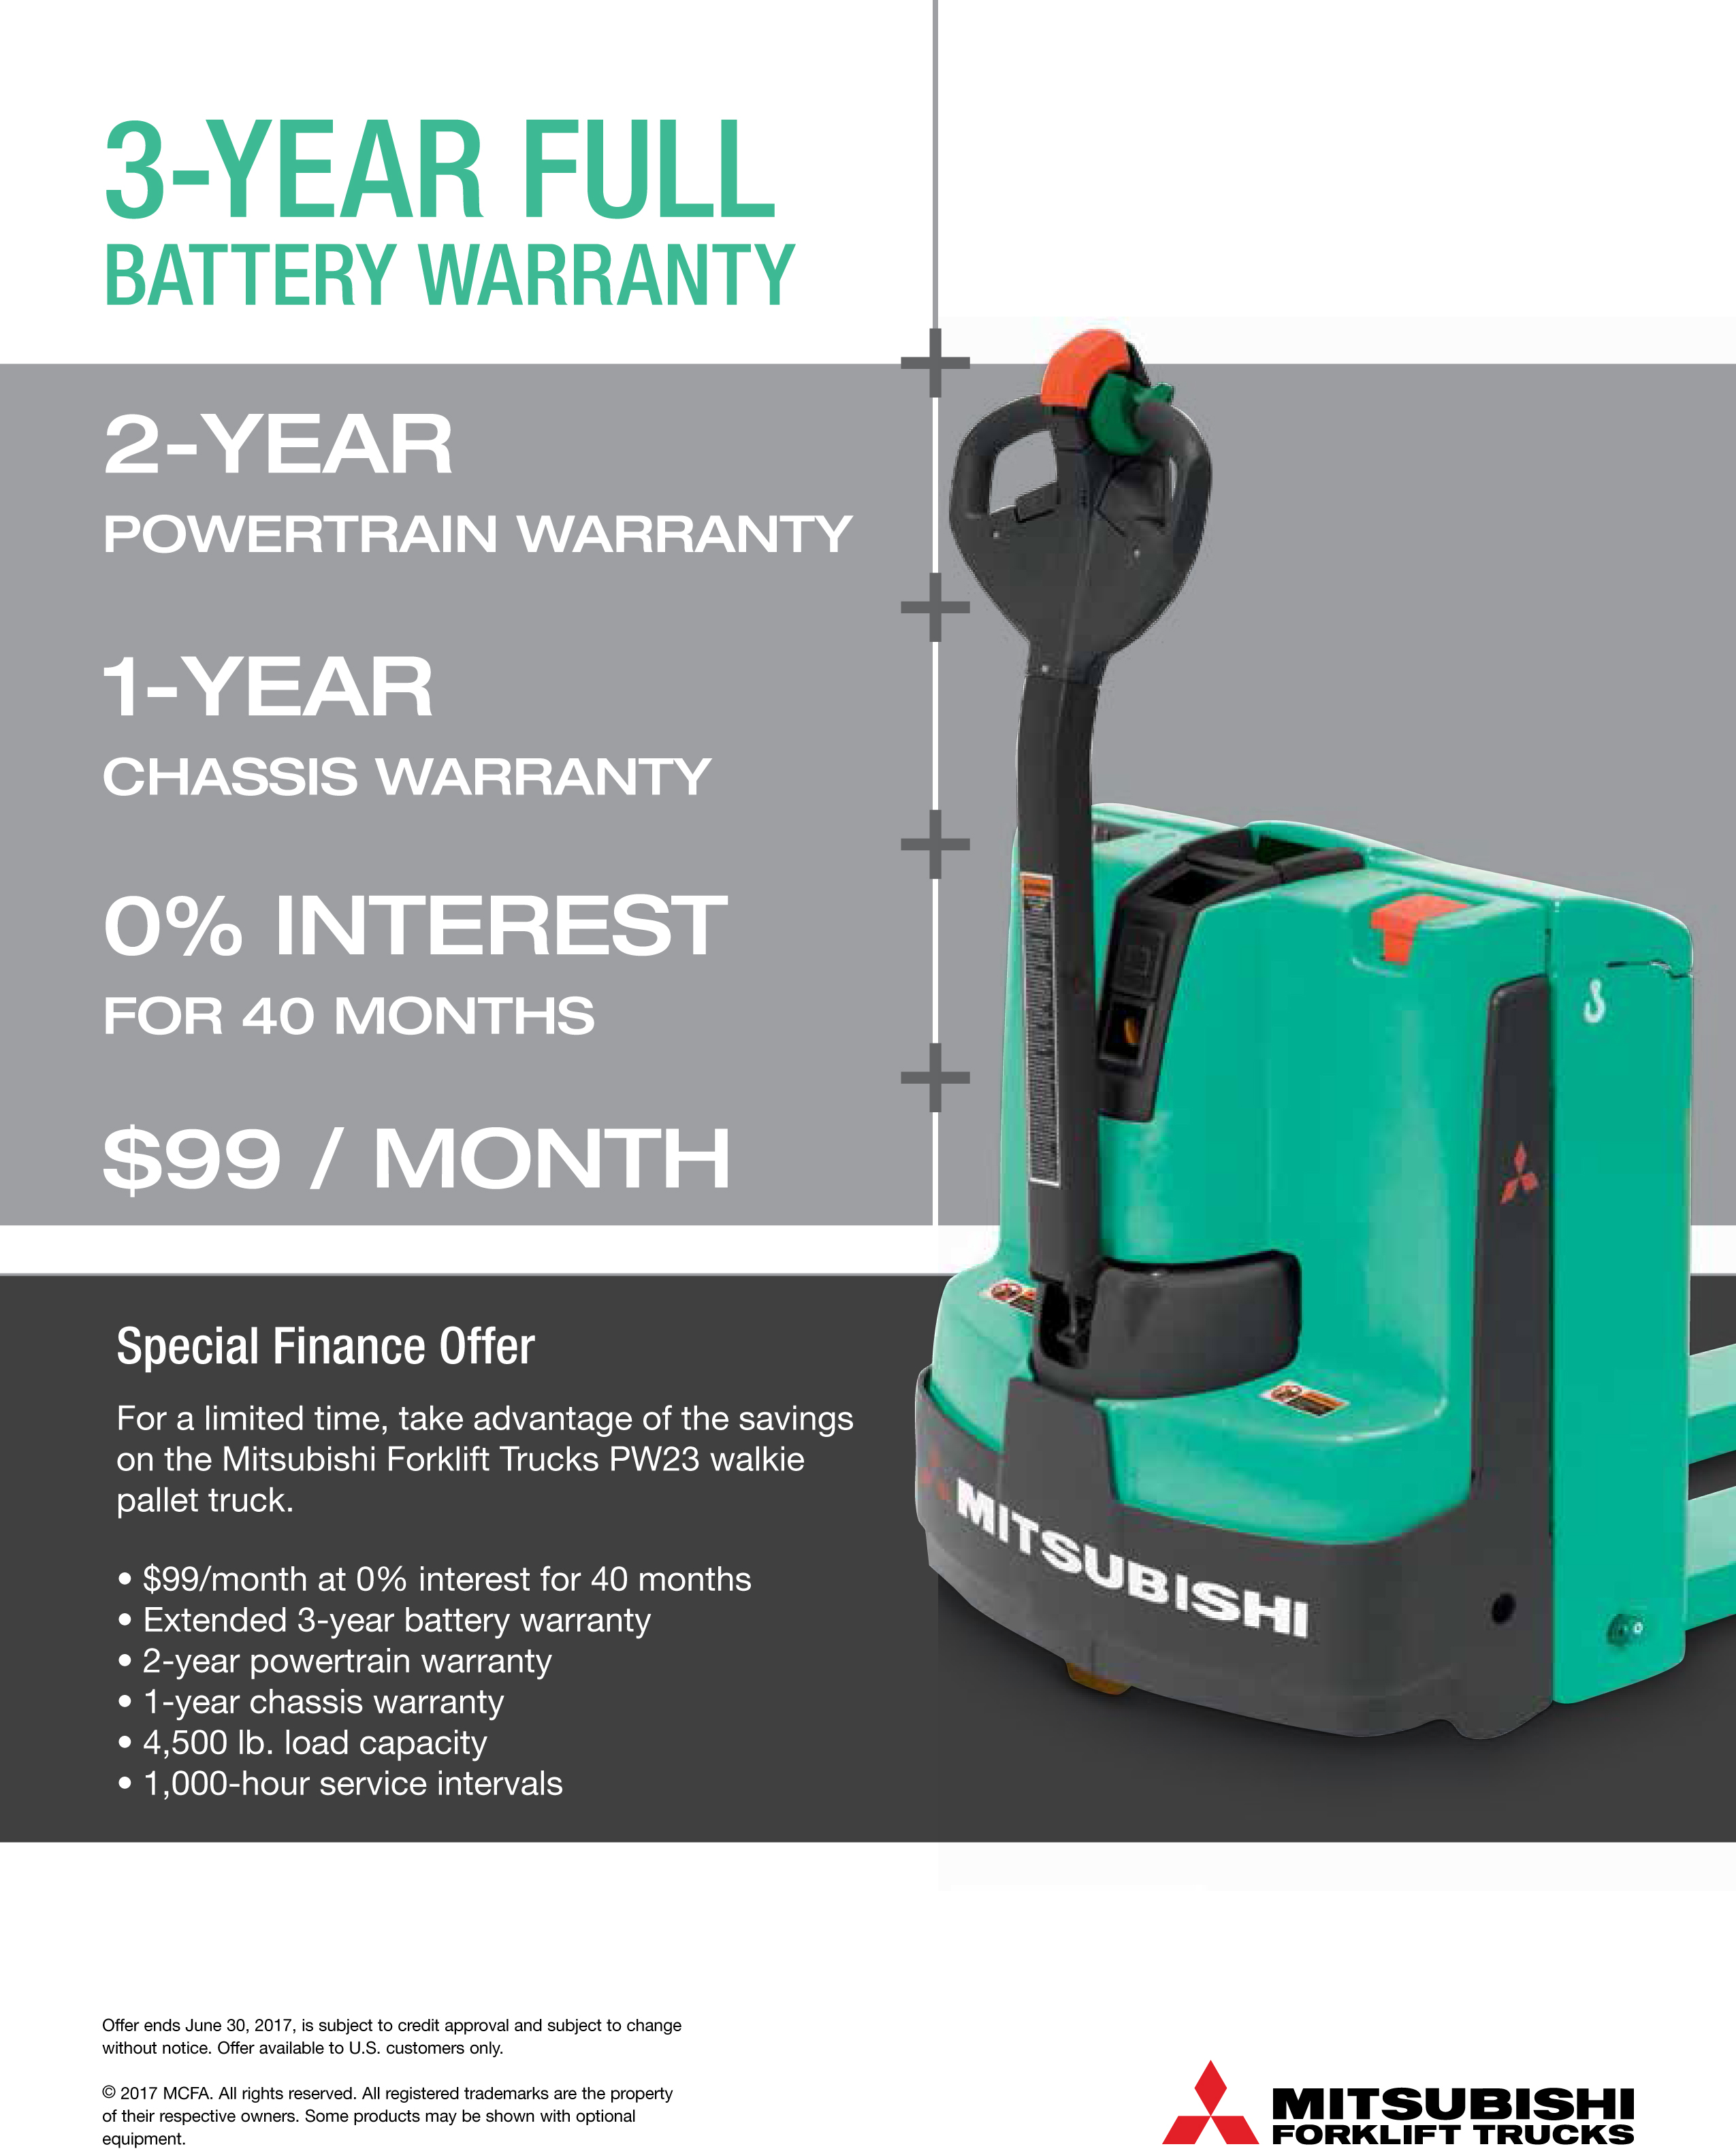 3-Year Full Battery Warranty